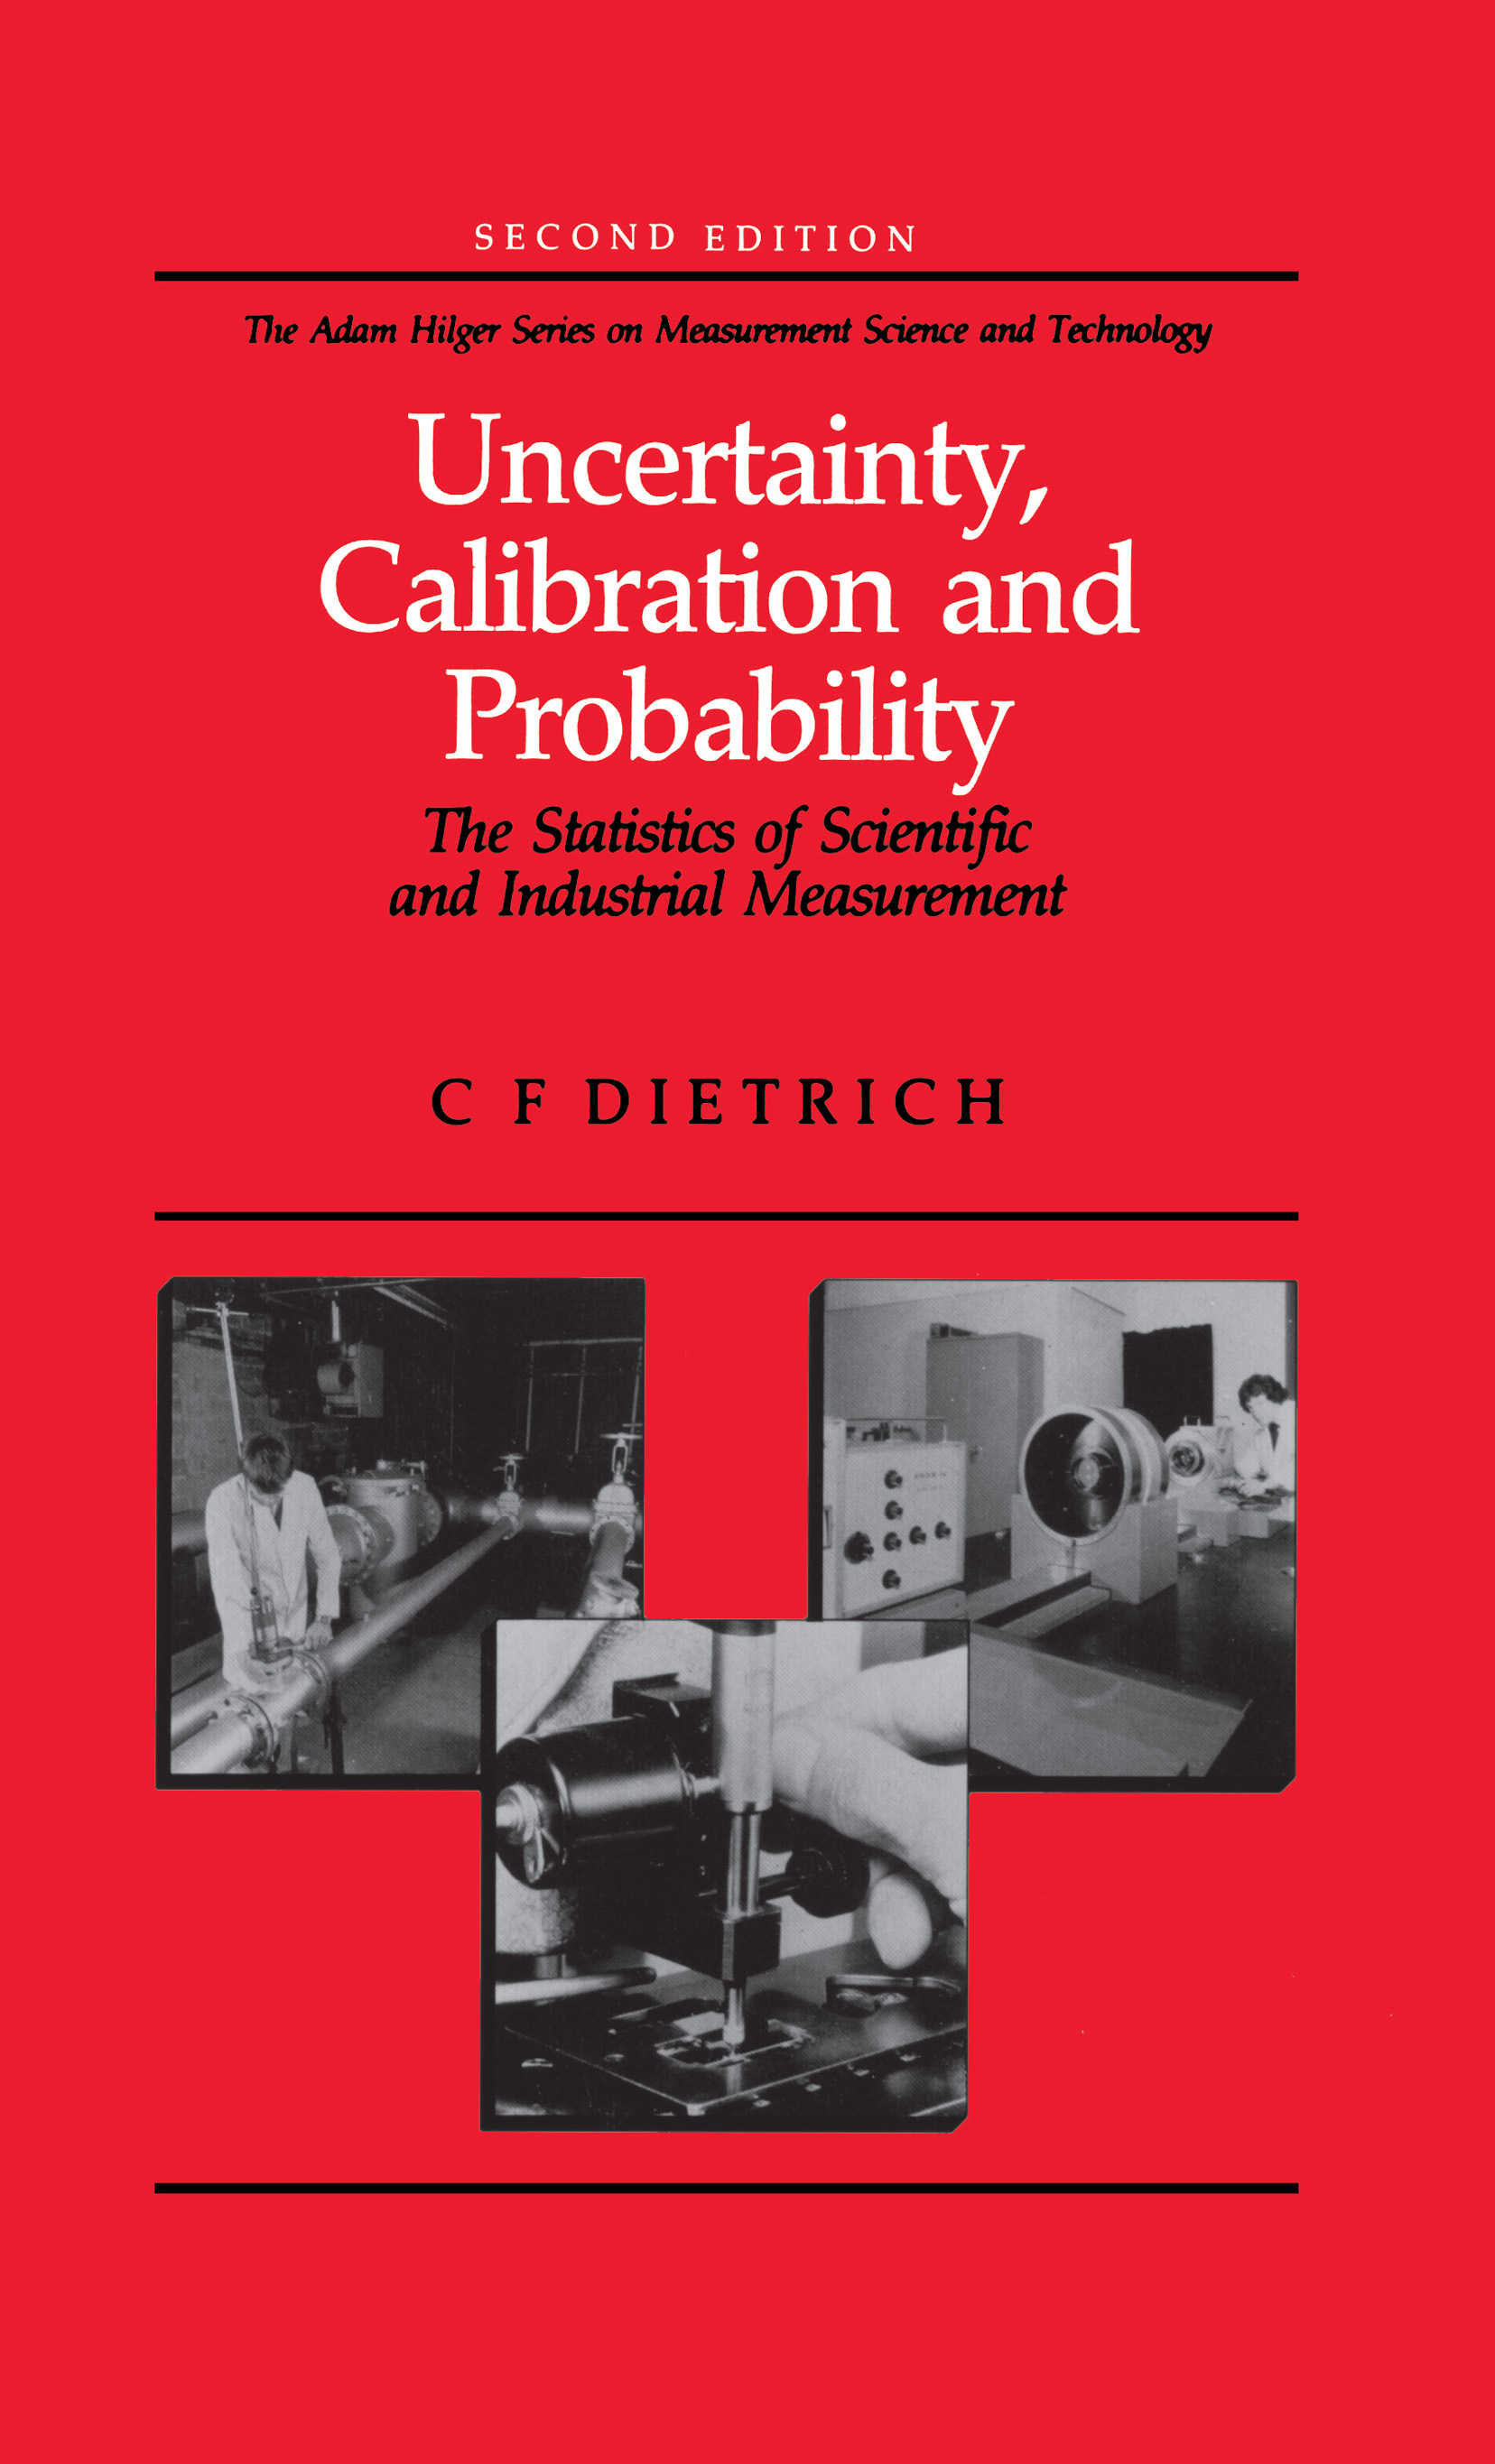 Uncertainty, Calibration and Probability